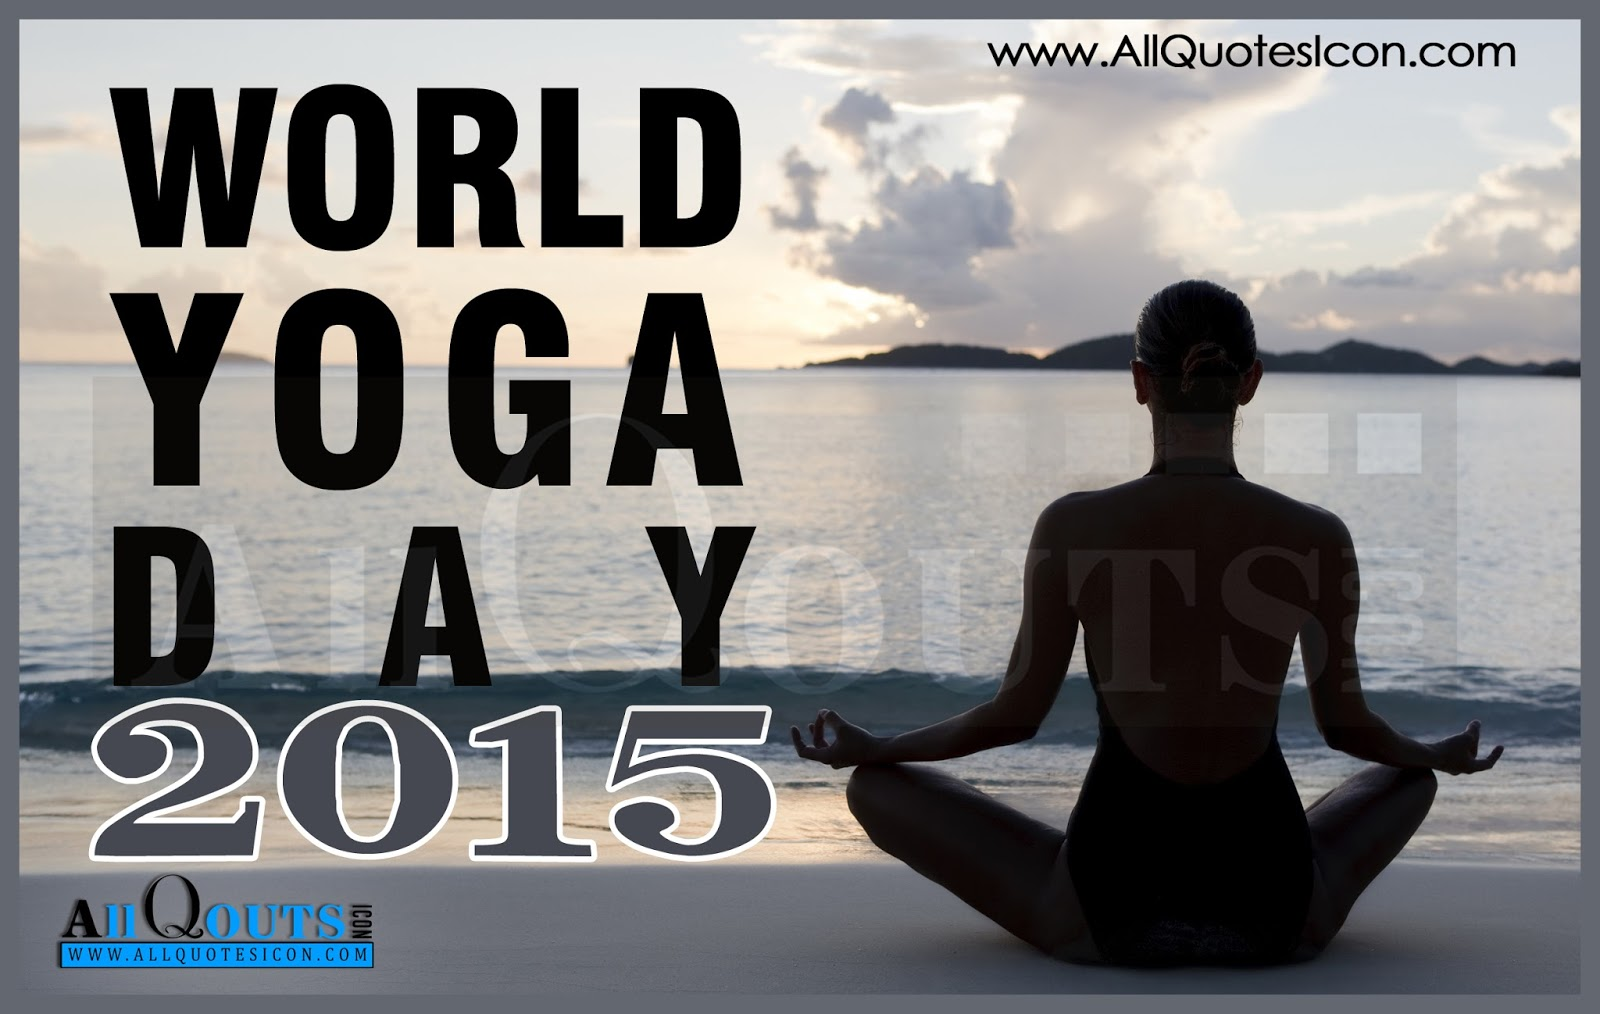 World Yoga Day Wishes 2015 Pictures Wwwallquotesiconcom Telugu